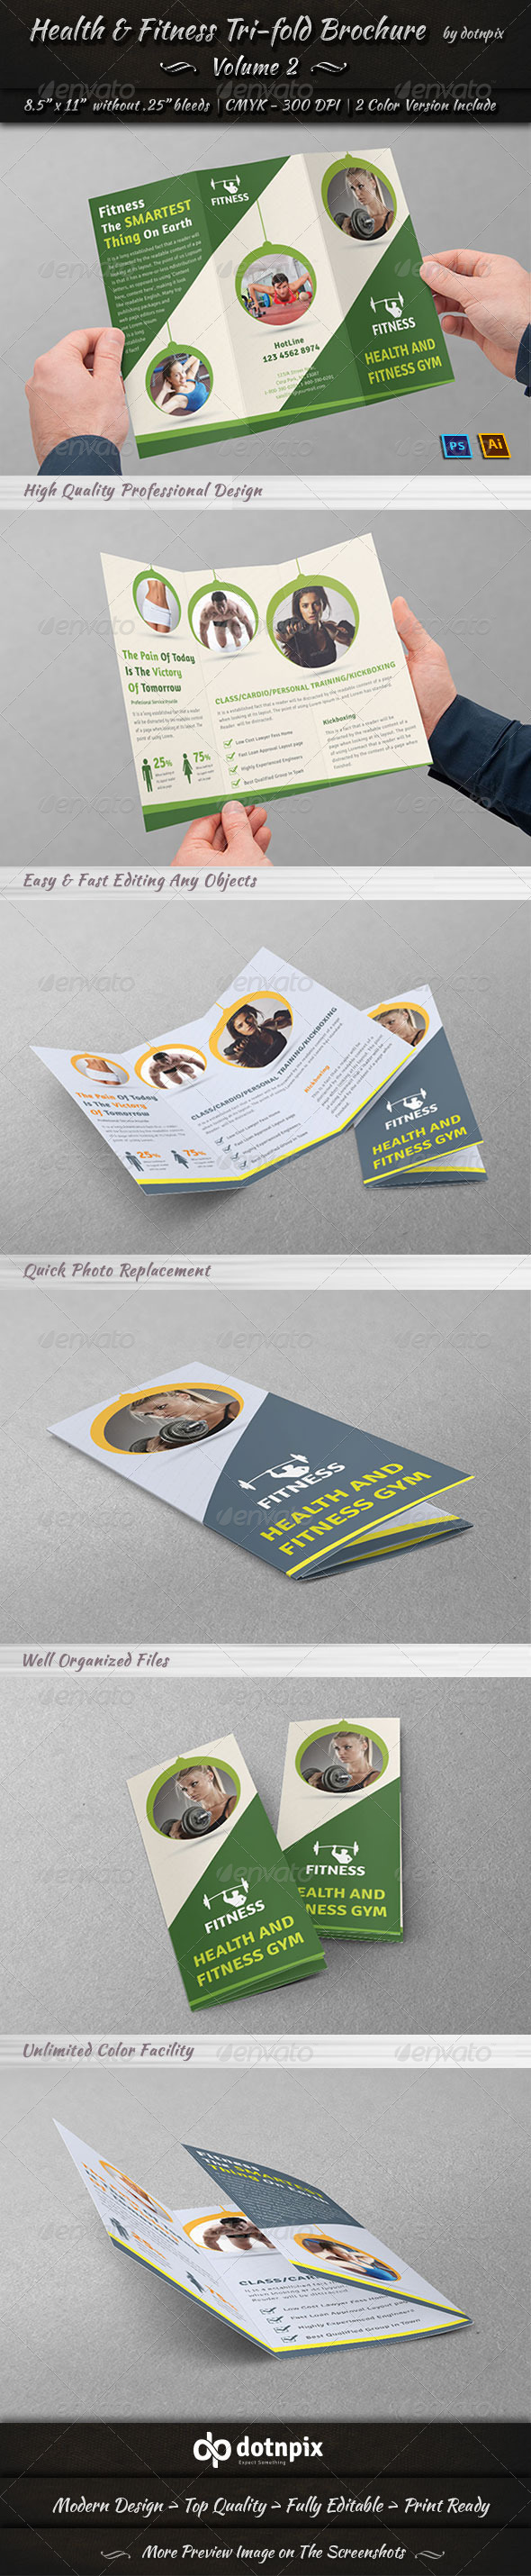 GraphicRiver Health & Fitness Tri-Fold Brochure Volume 2 7720620